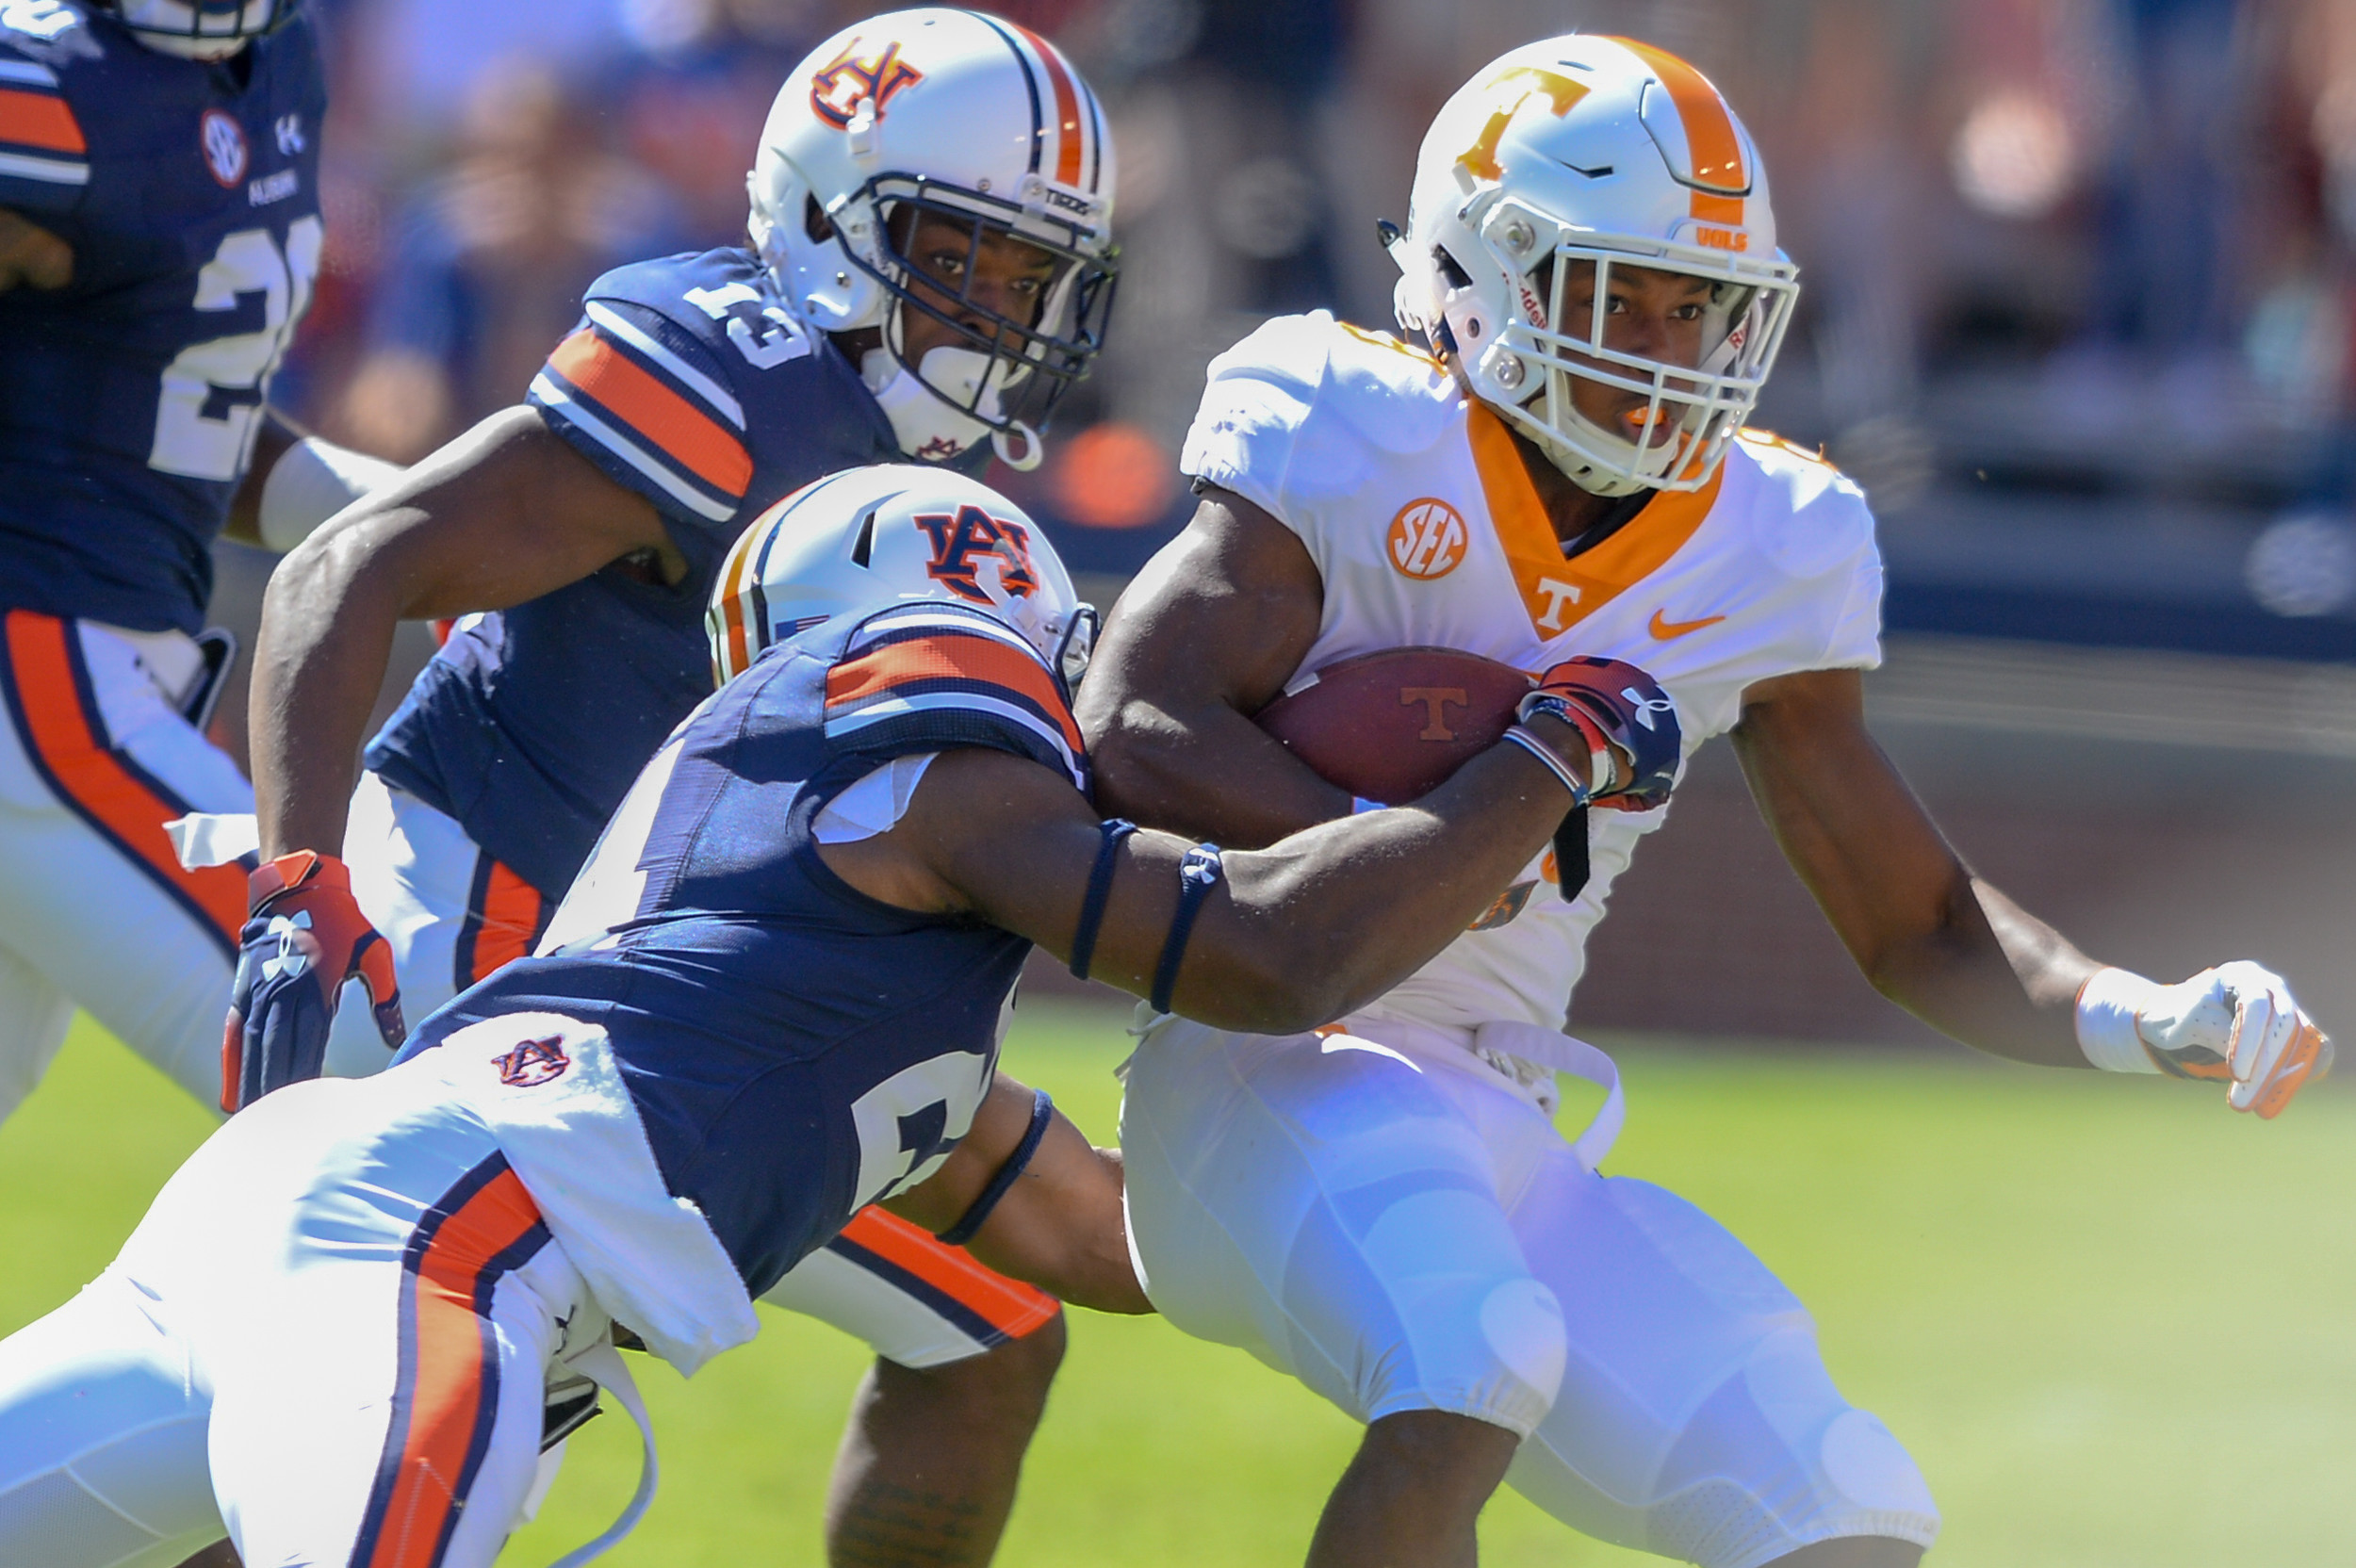 Auburn Tigers defensive back Daniel Thomas (24) tackles Tennessee Volunteers running back Ty Chandler (8) during the first half of Saturday's game, at Jordan-Hare Stadium in Auburn, AL. Daily Mountain Eagle -  Jeff Johnsey